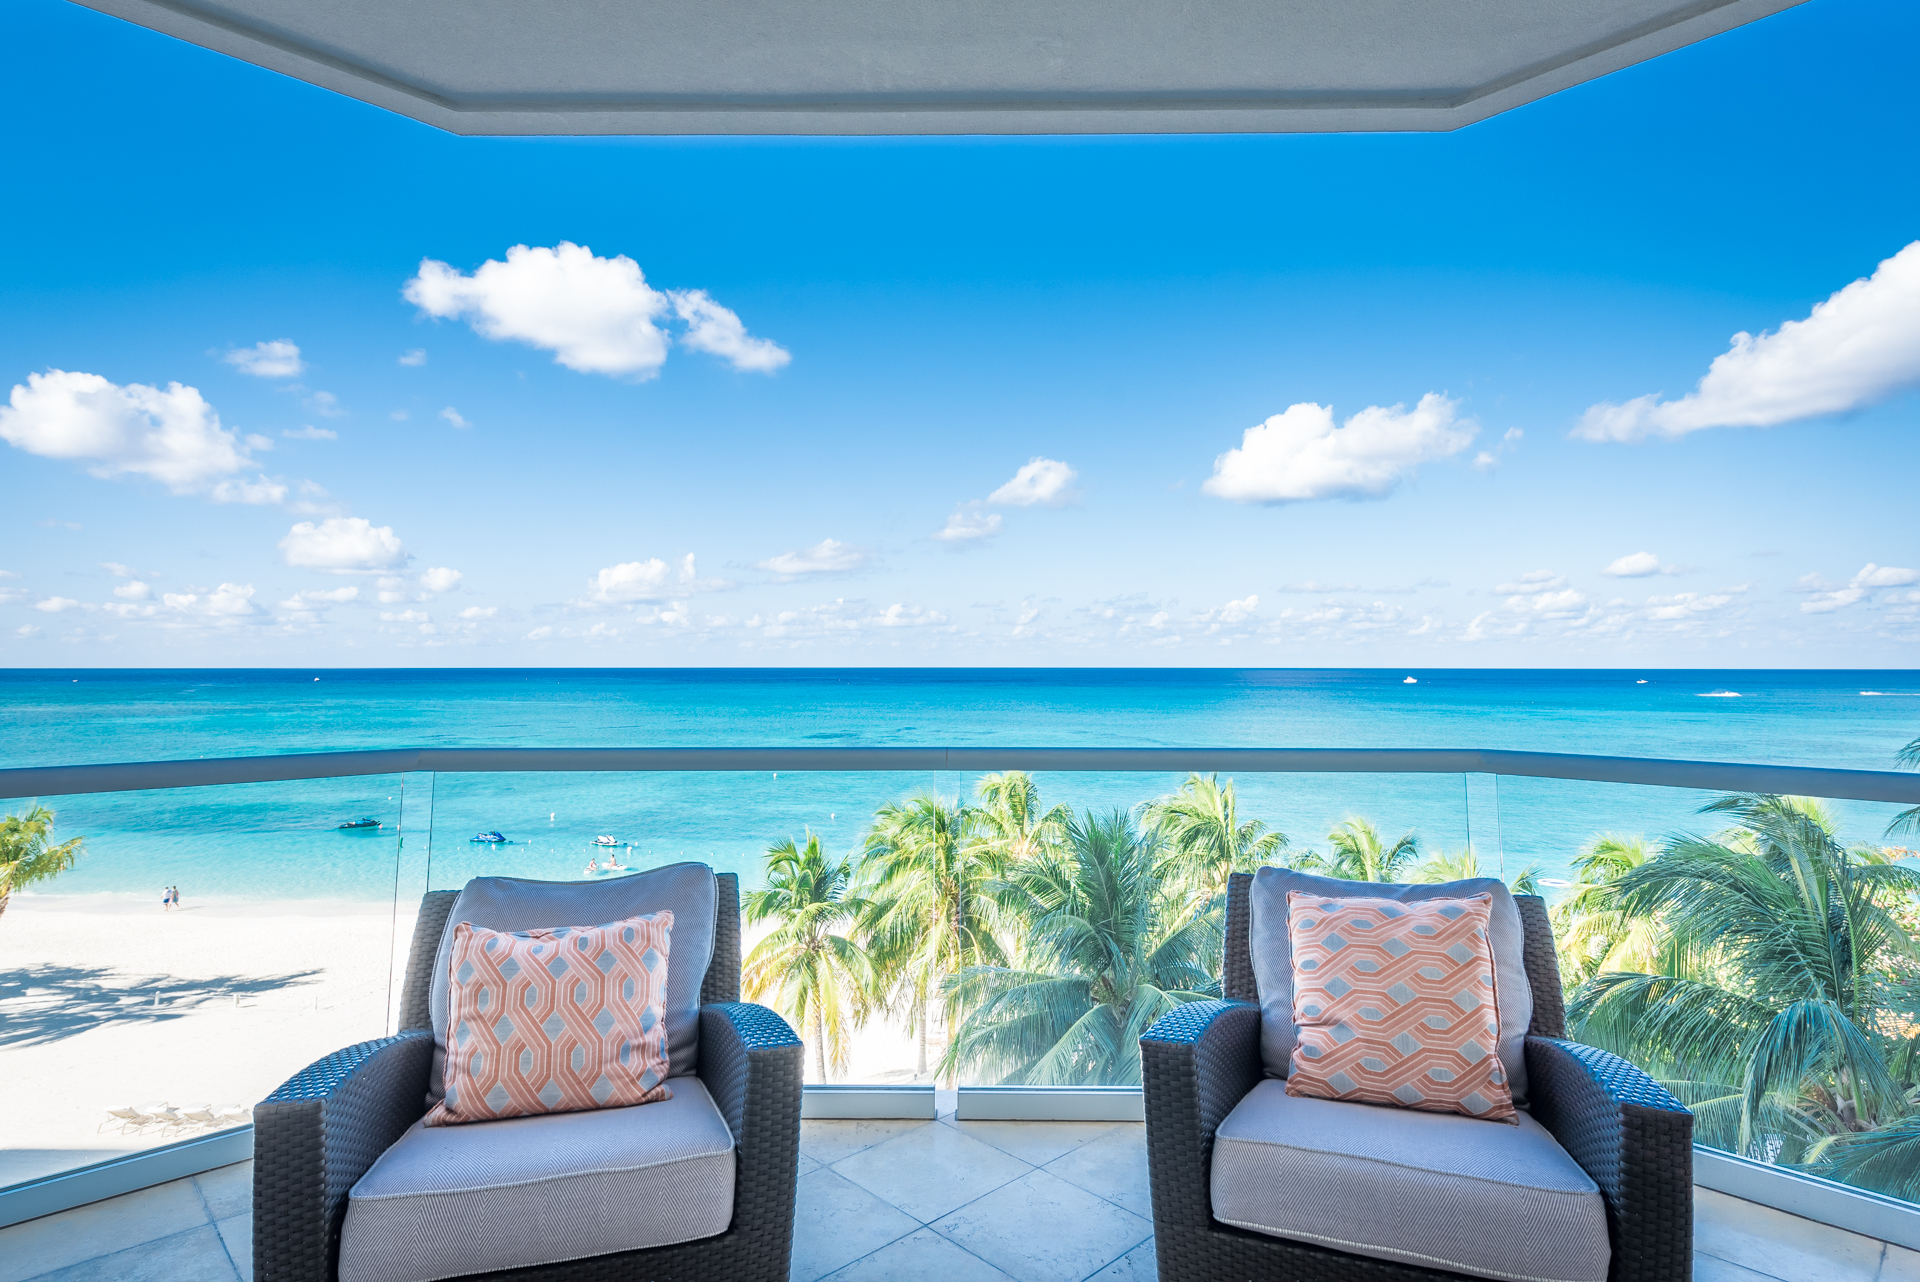 Here's why Cayman Islands Real Estate is Even More Attractive Since COVID-19